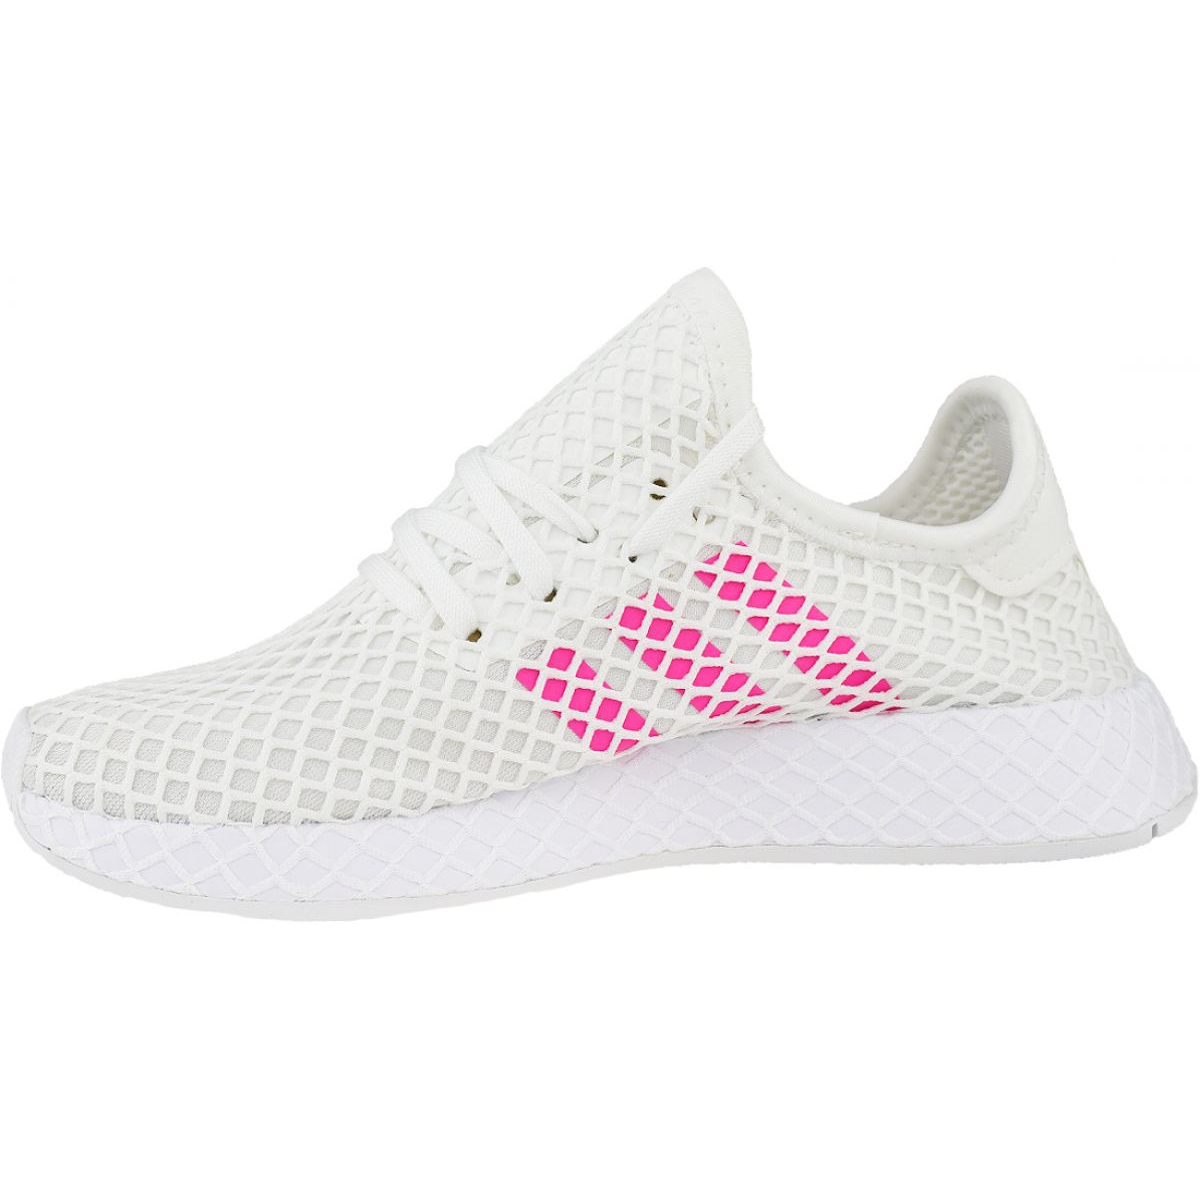 Details about Adidas Deerupt Runner W EE6608 shoes white